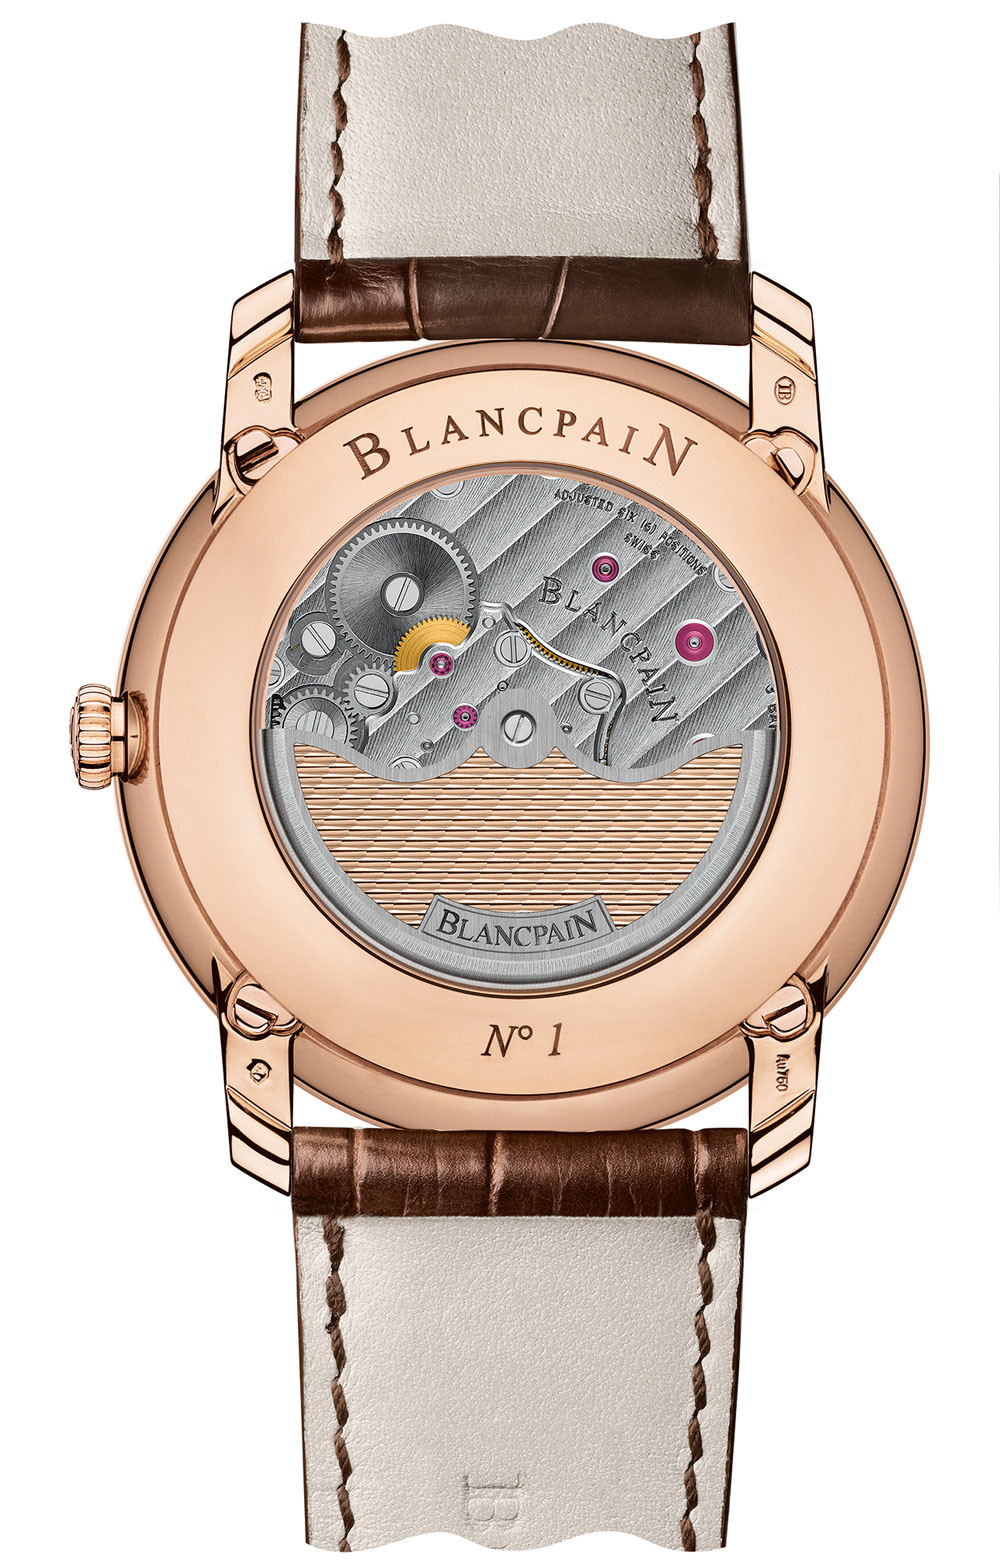 Blancpain Villeret Collection 8 Day Perpetual Calendar - Caseback